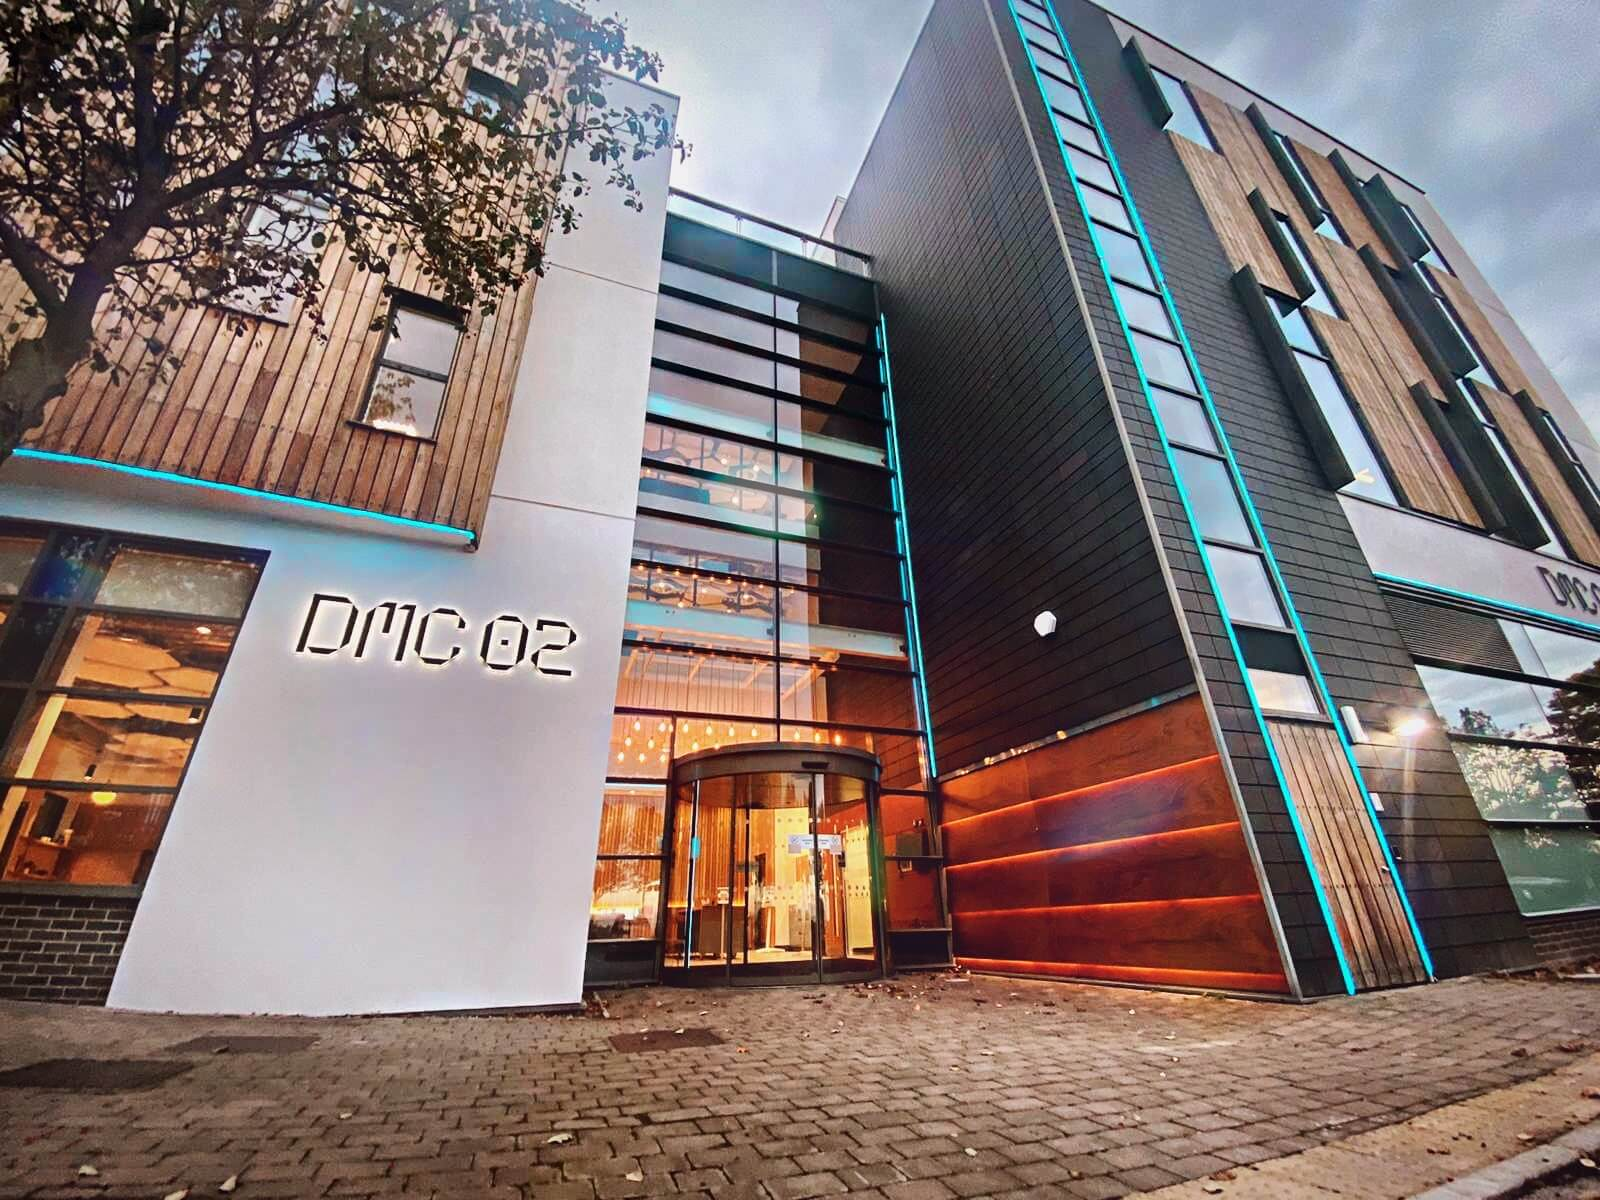 Barnsley blazes a trail with opening of new digital business hub